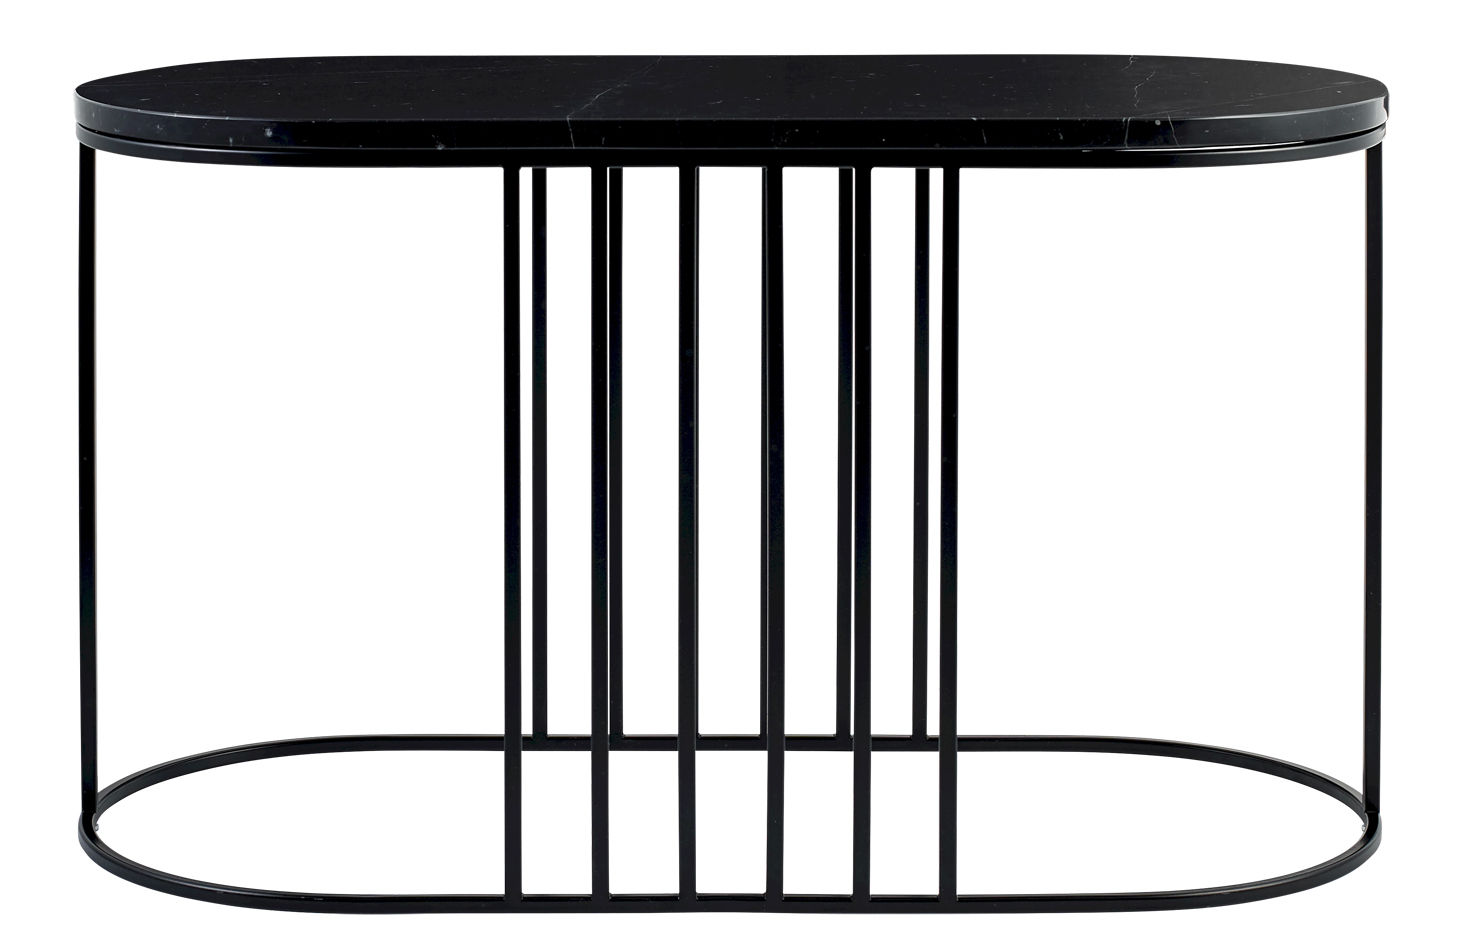 Furniture - Coffee Tables - Posea Coffee table - / Marble - L 80 x H 48 cm by Bolia - Black marble / Black base - Marble, Varnished steel